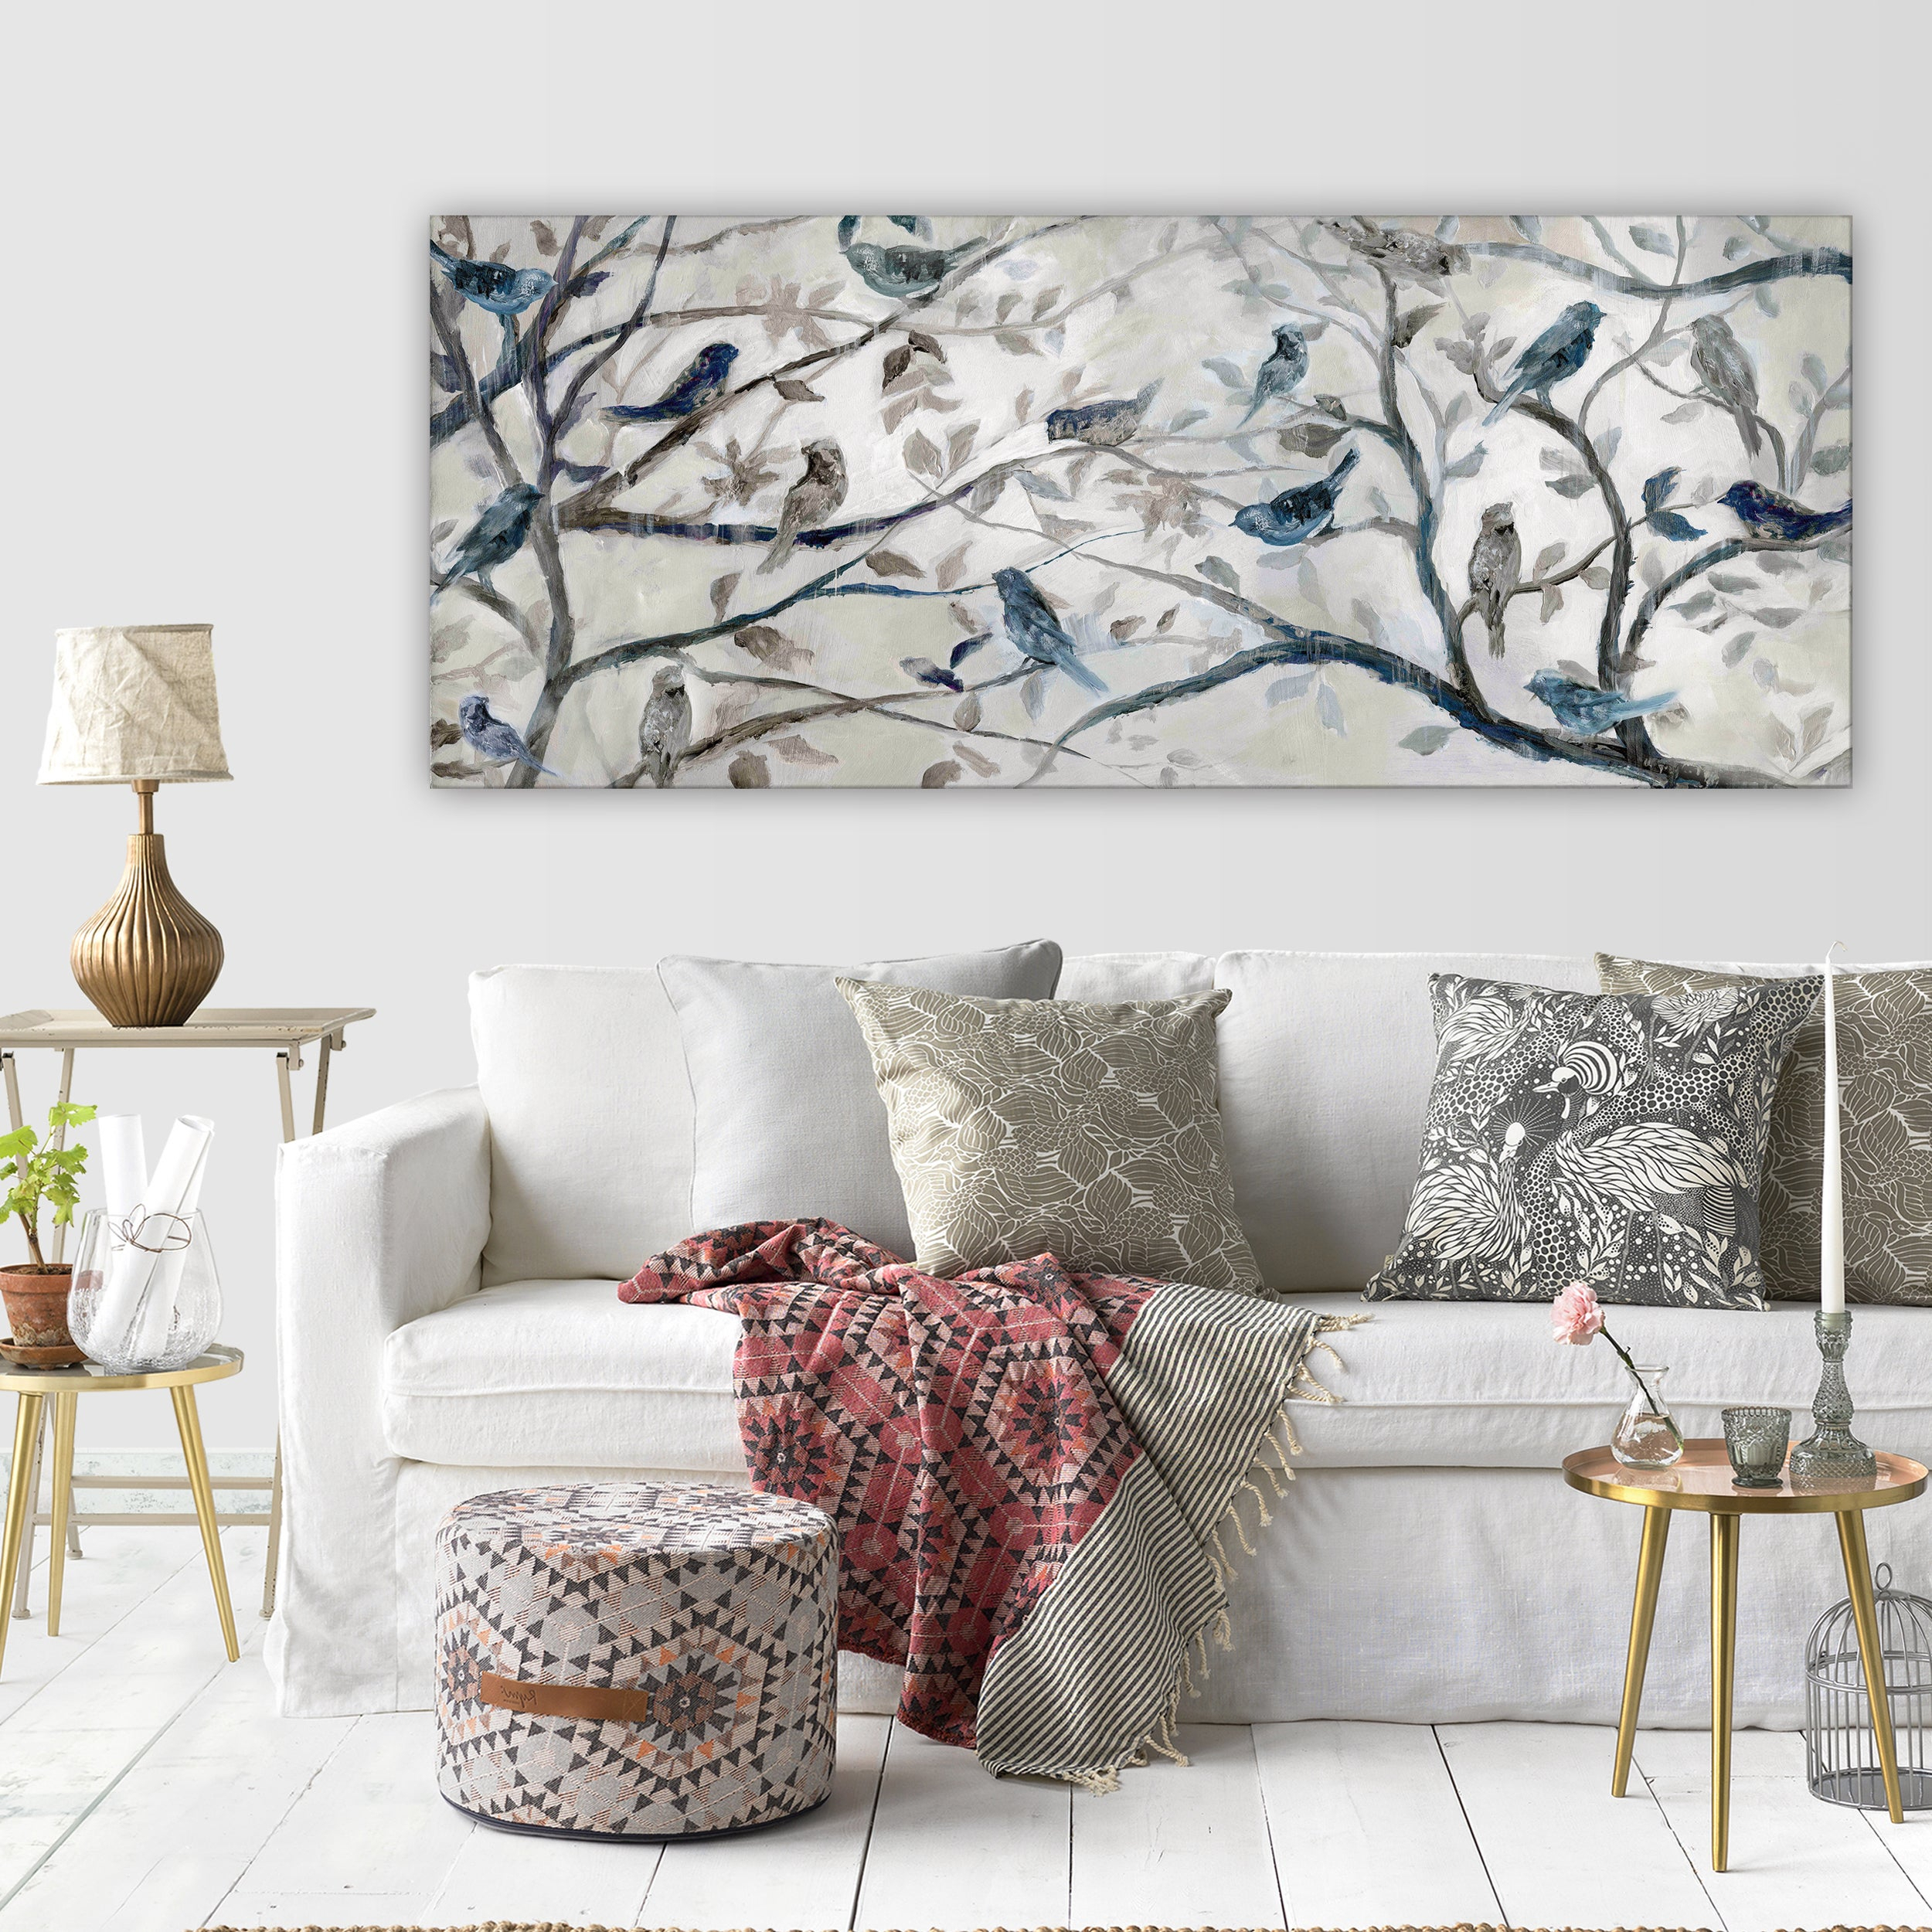 Art Gallery | Shop Our Best Home Goods Deals Online At Overstock For Abstract Bar And Panel Wall Decor (Image 12 of 30)